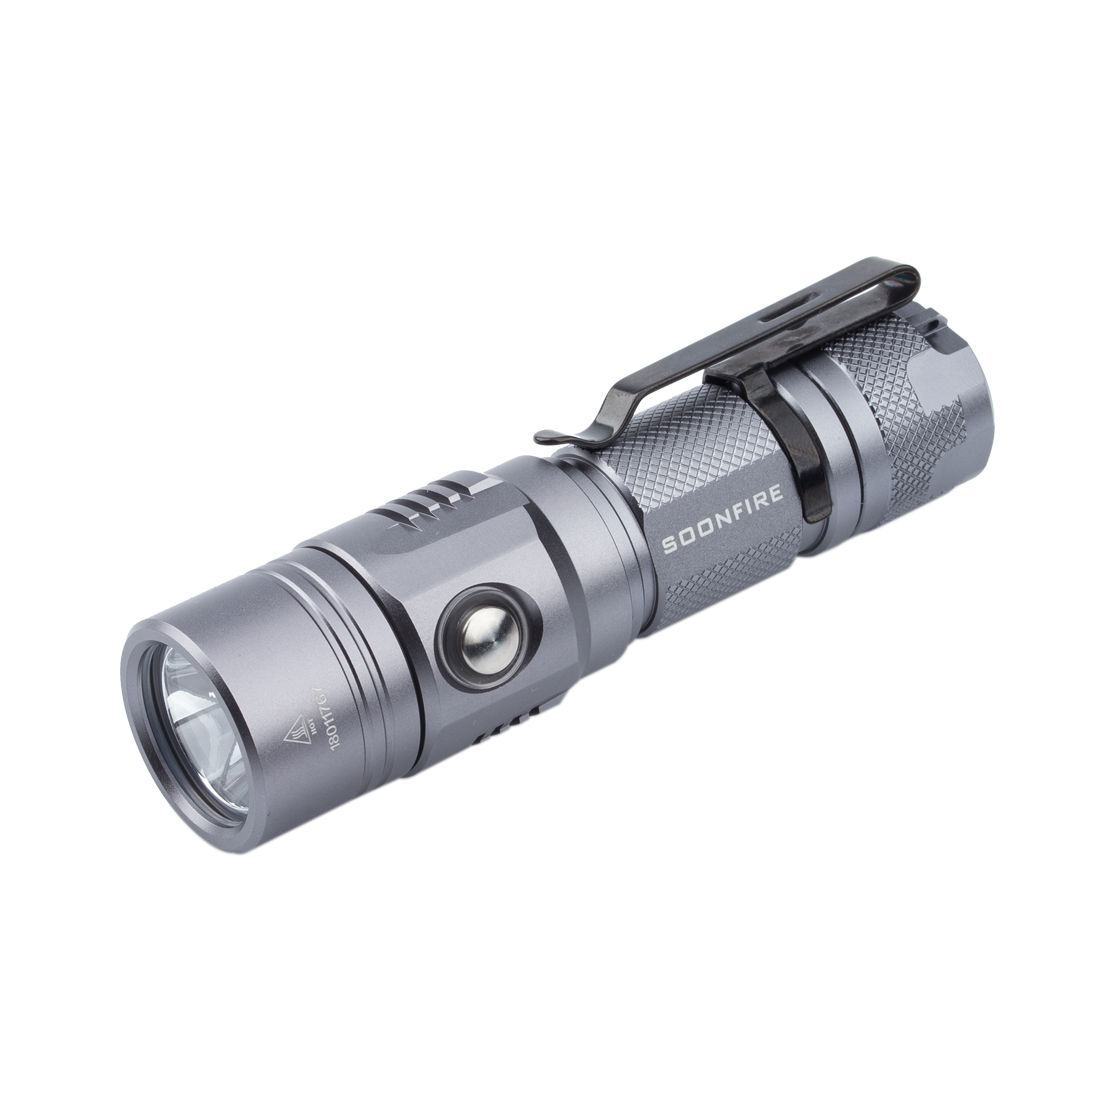 Soonfire E11 Multifunctional 1000 Lumen Ultra-bright Rechargeable CREE XP-L LED Flashlight